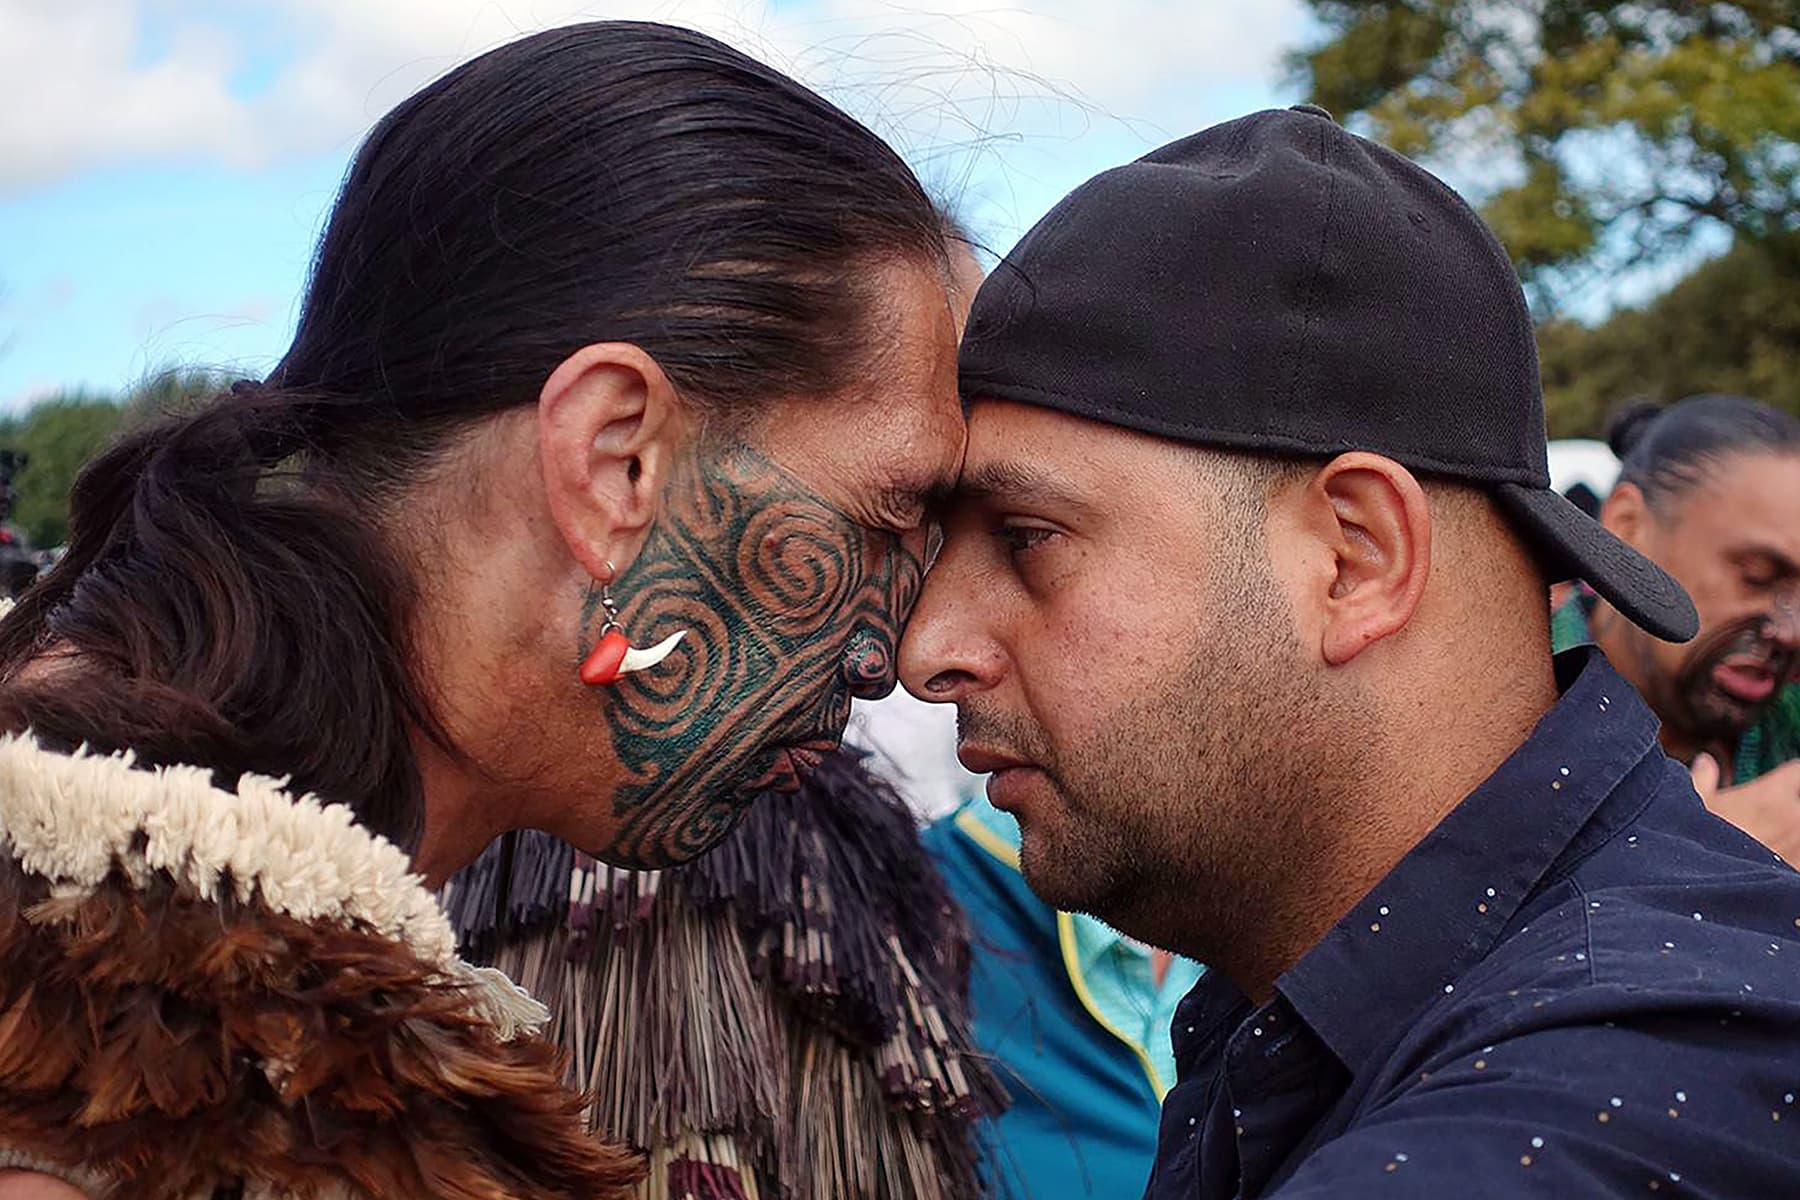 A Muslim man (R) and another local perform a traditional Maori 'hongi' greeting, a touching of noses, during a gathering for congregational Friday prayers at Hagley Park in Christchurch. — AFP